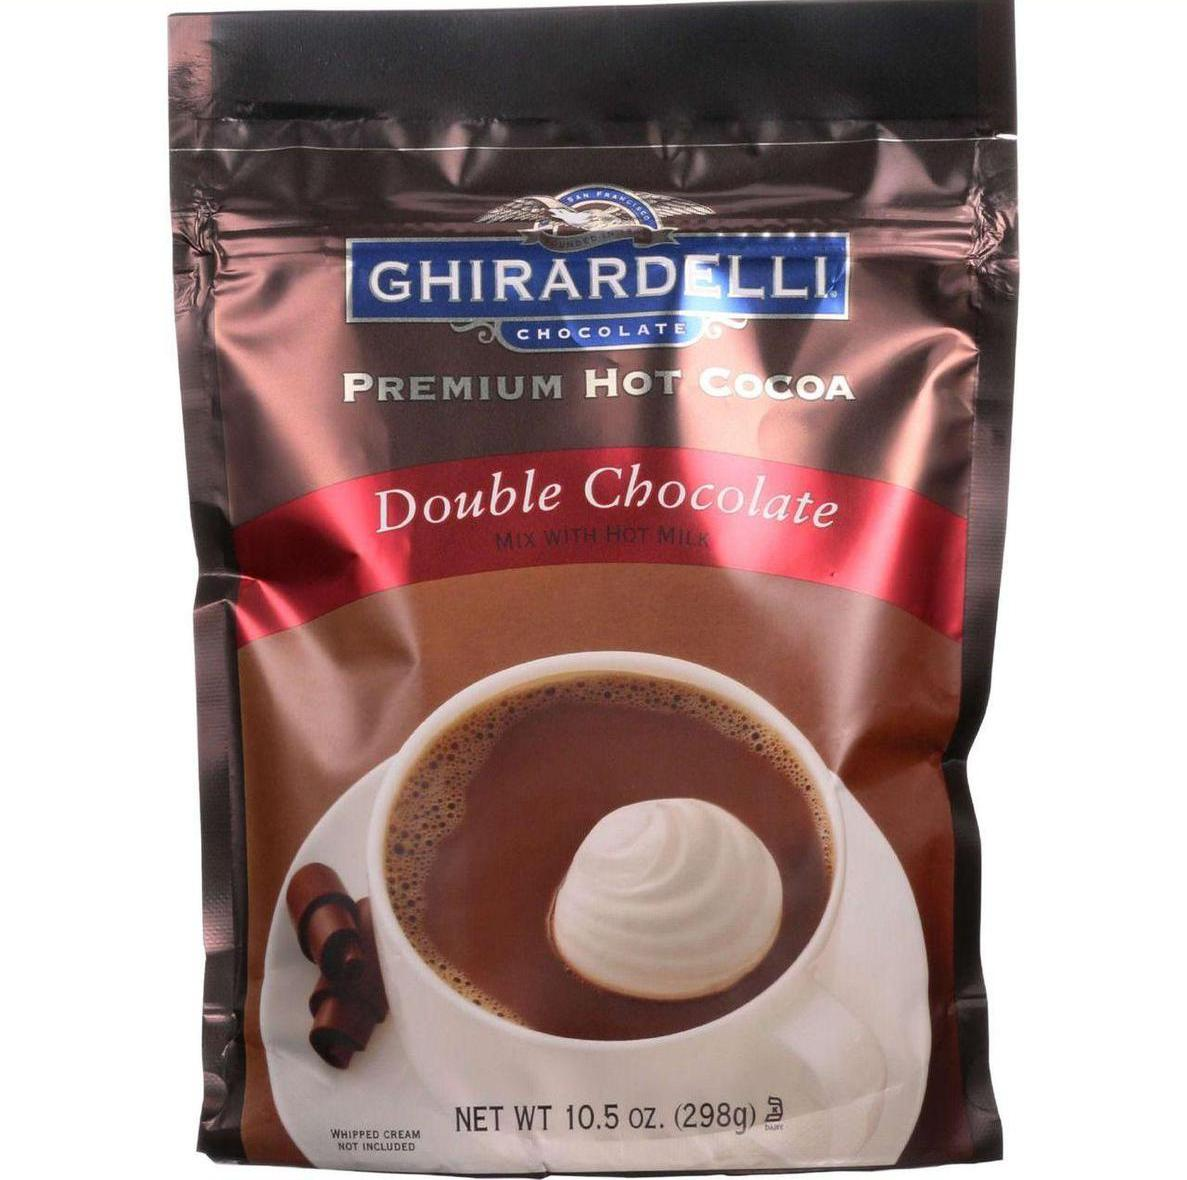 Ghirardelli Hot Cocoa Premium Double Chocolate 10.5 oz case of 6 by